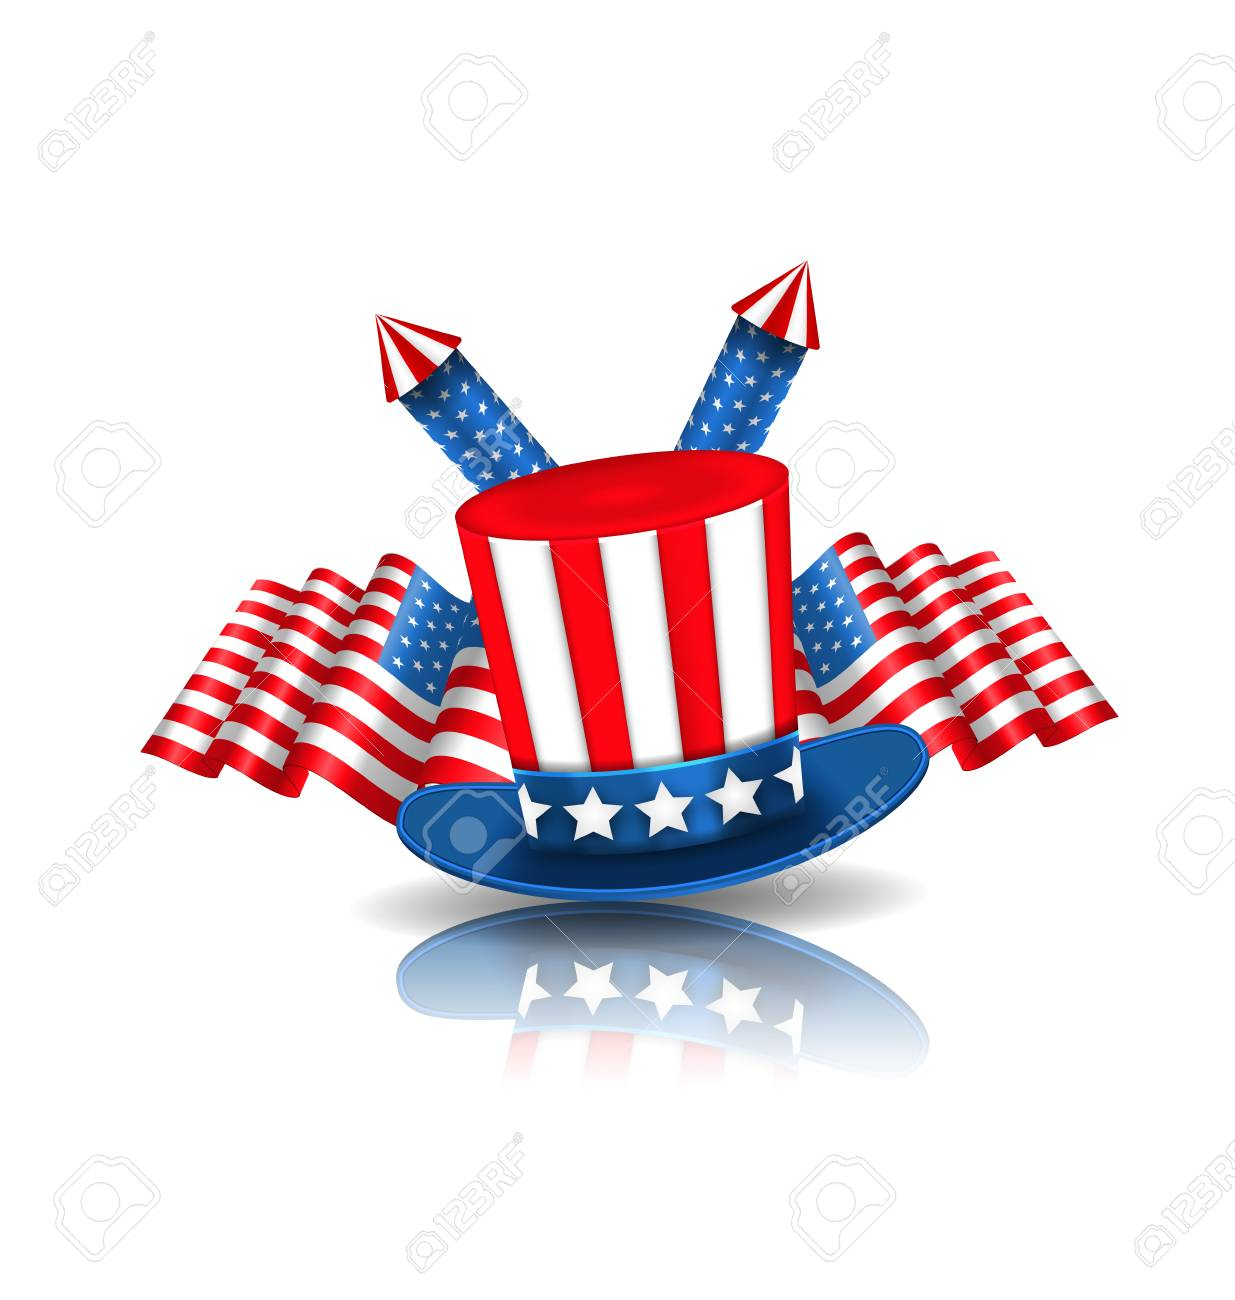 Illustration national symbols of usa in american colors objects illustration national symbols of usa in american colors objects with reflections vector stock vector biocorpaavc Images